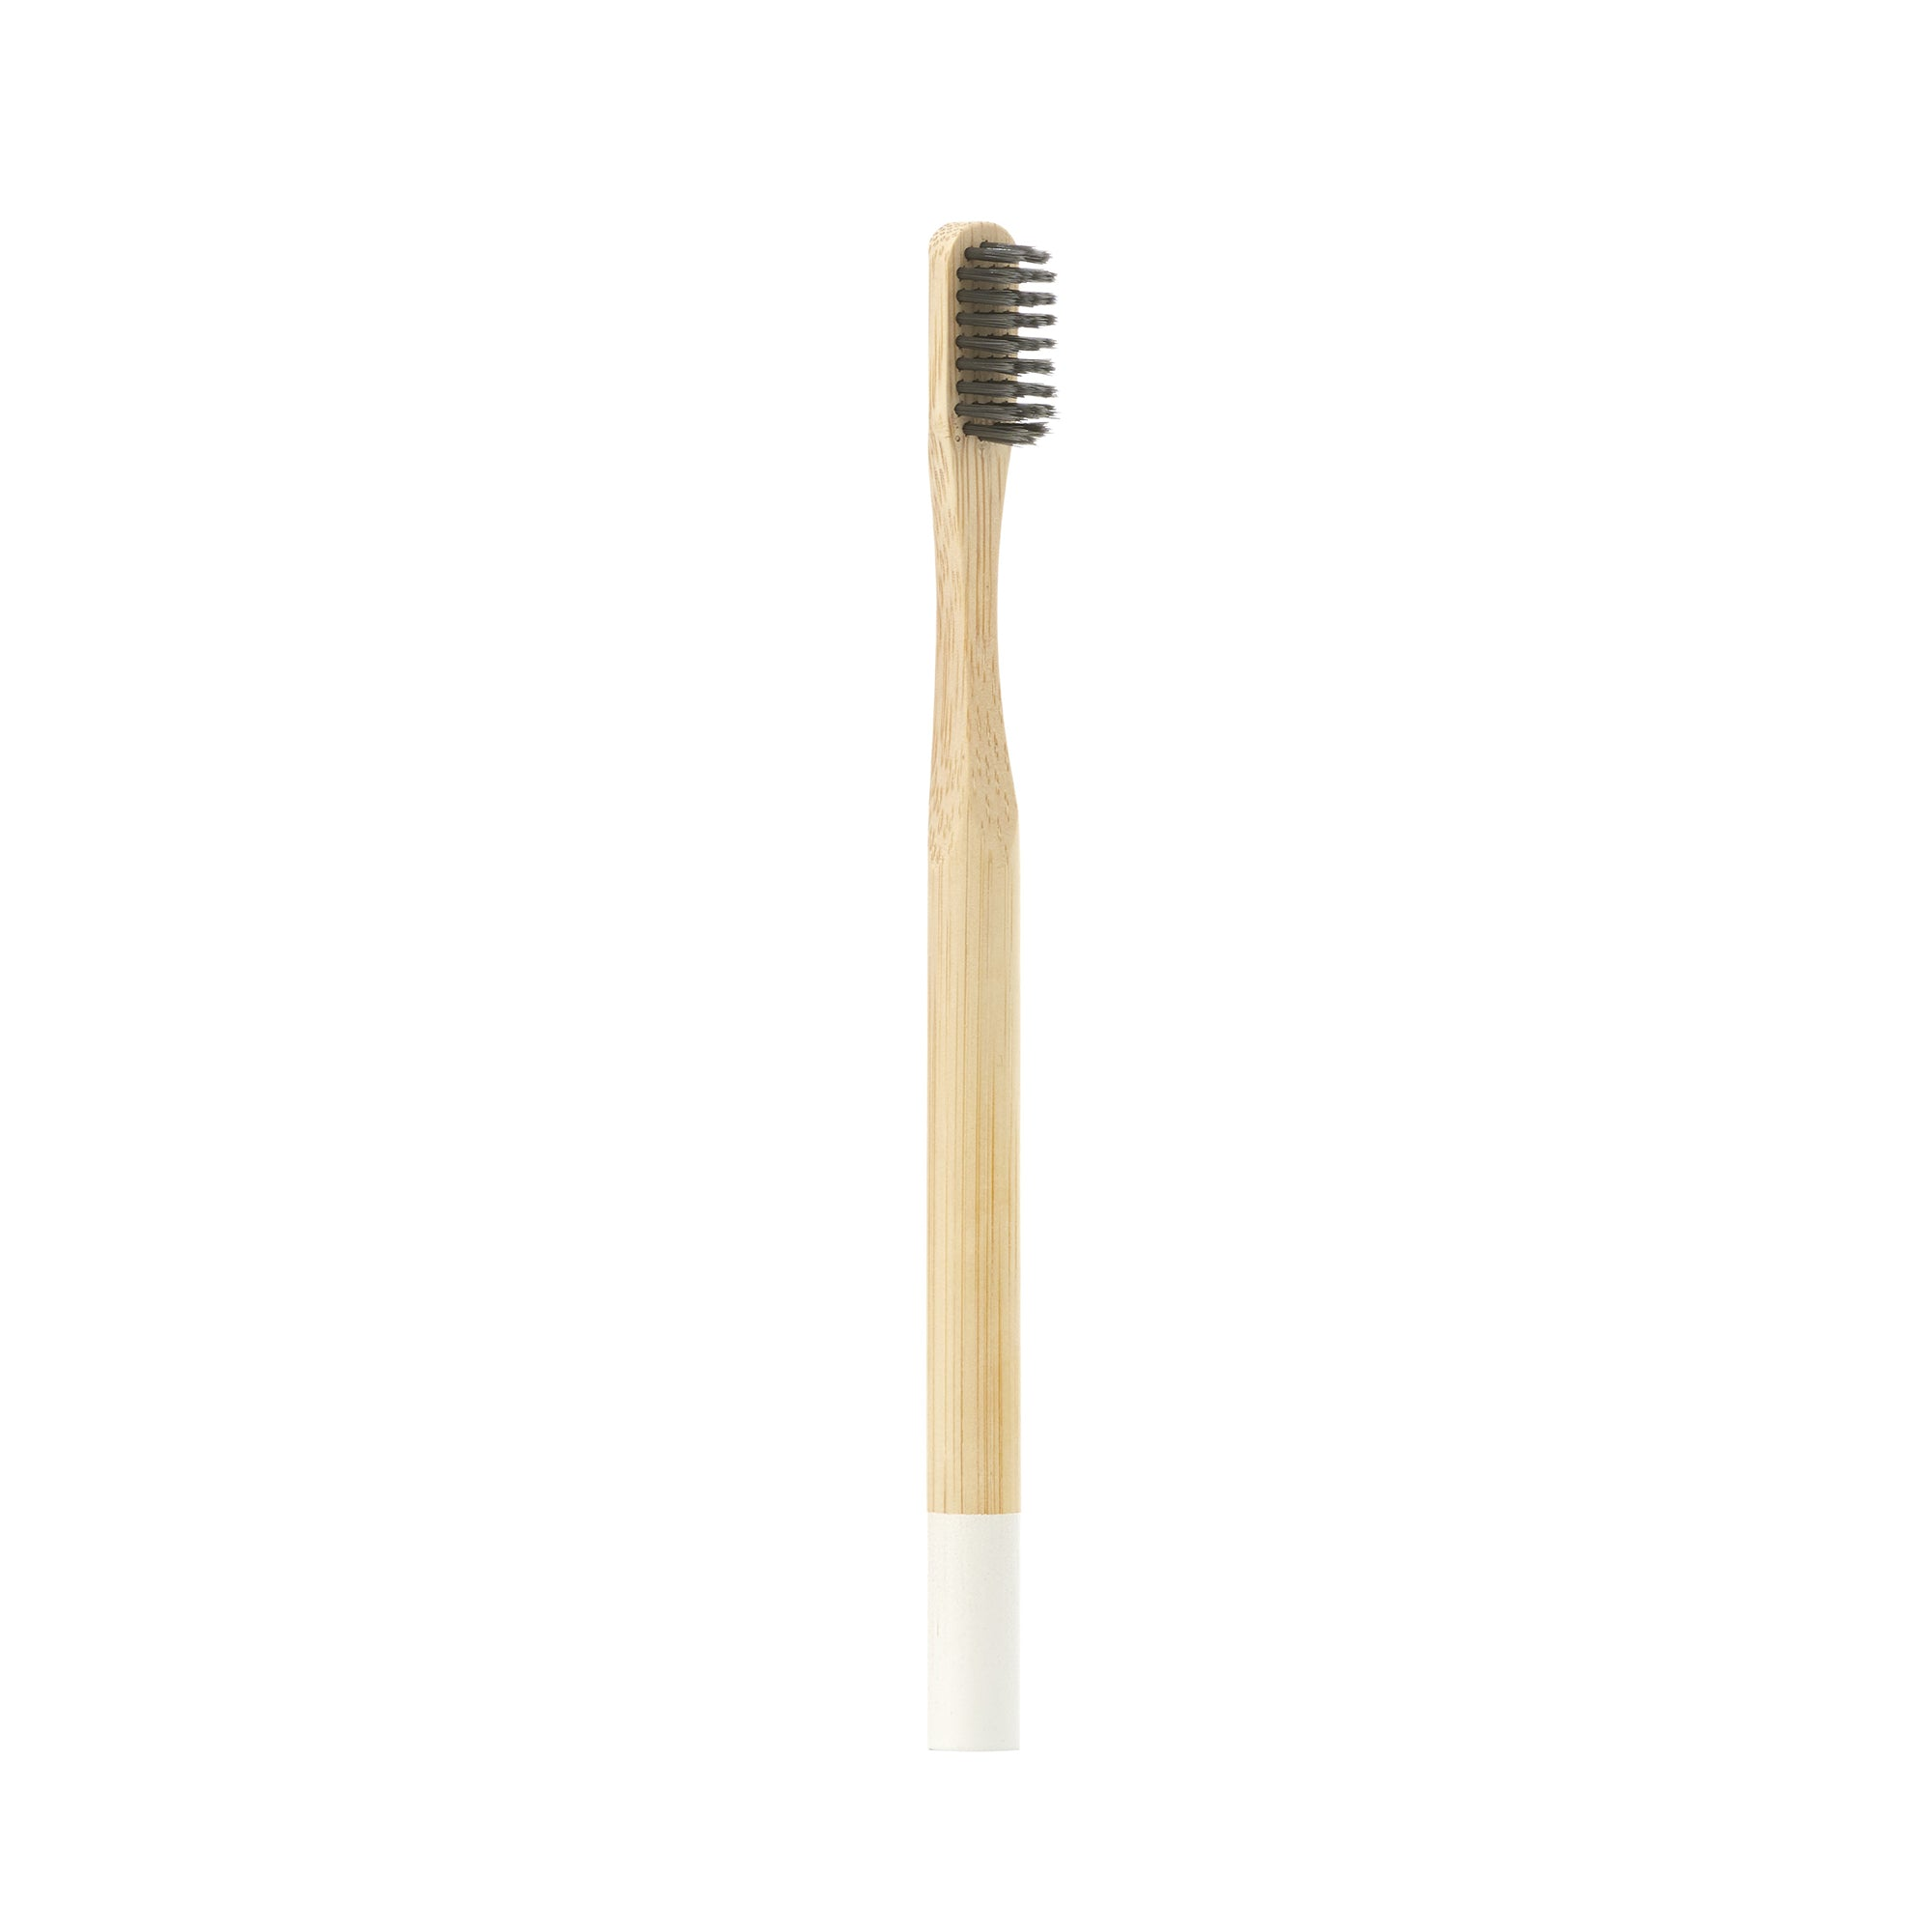 Danielle Clean & Green Bamboo Charcoal Toothbrush